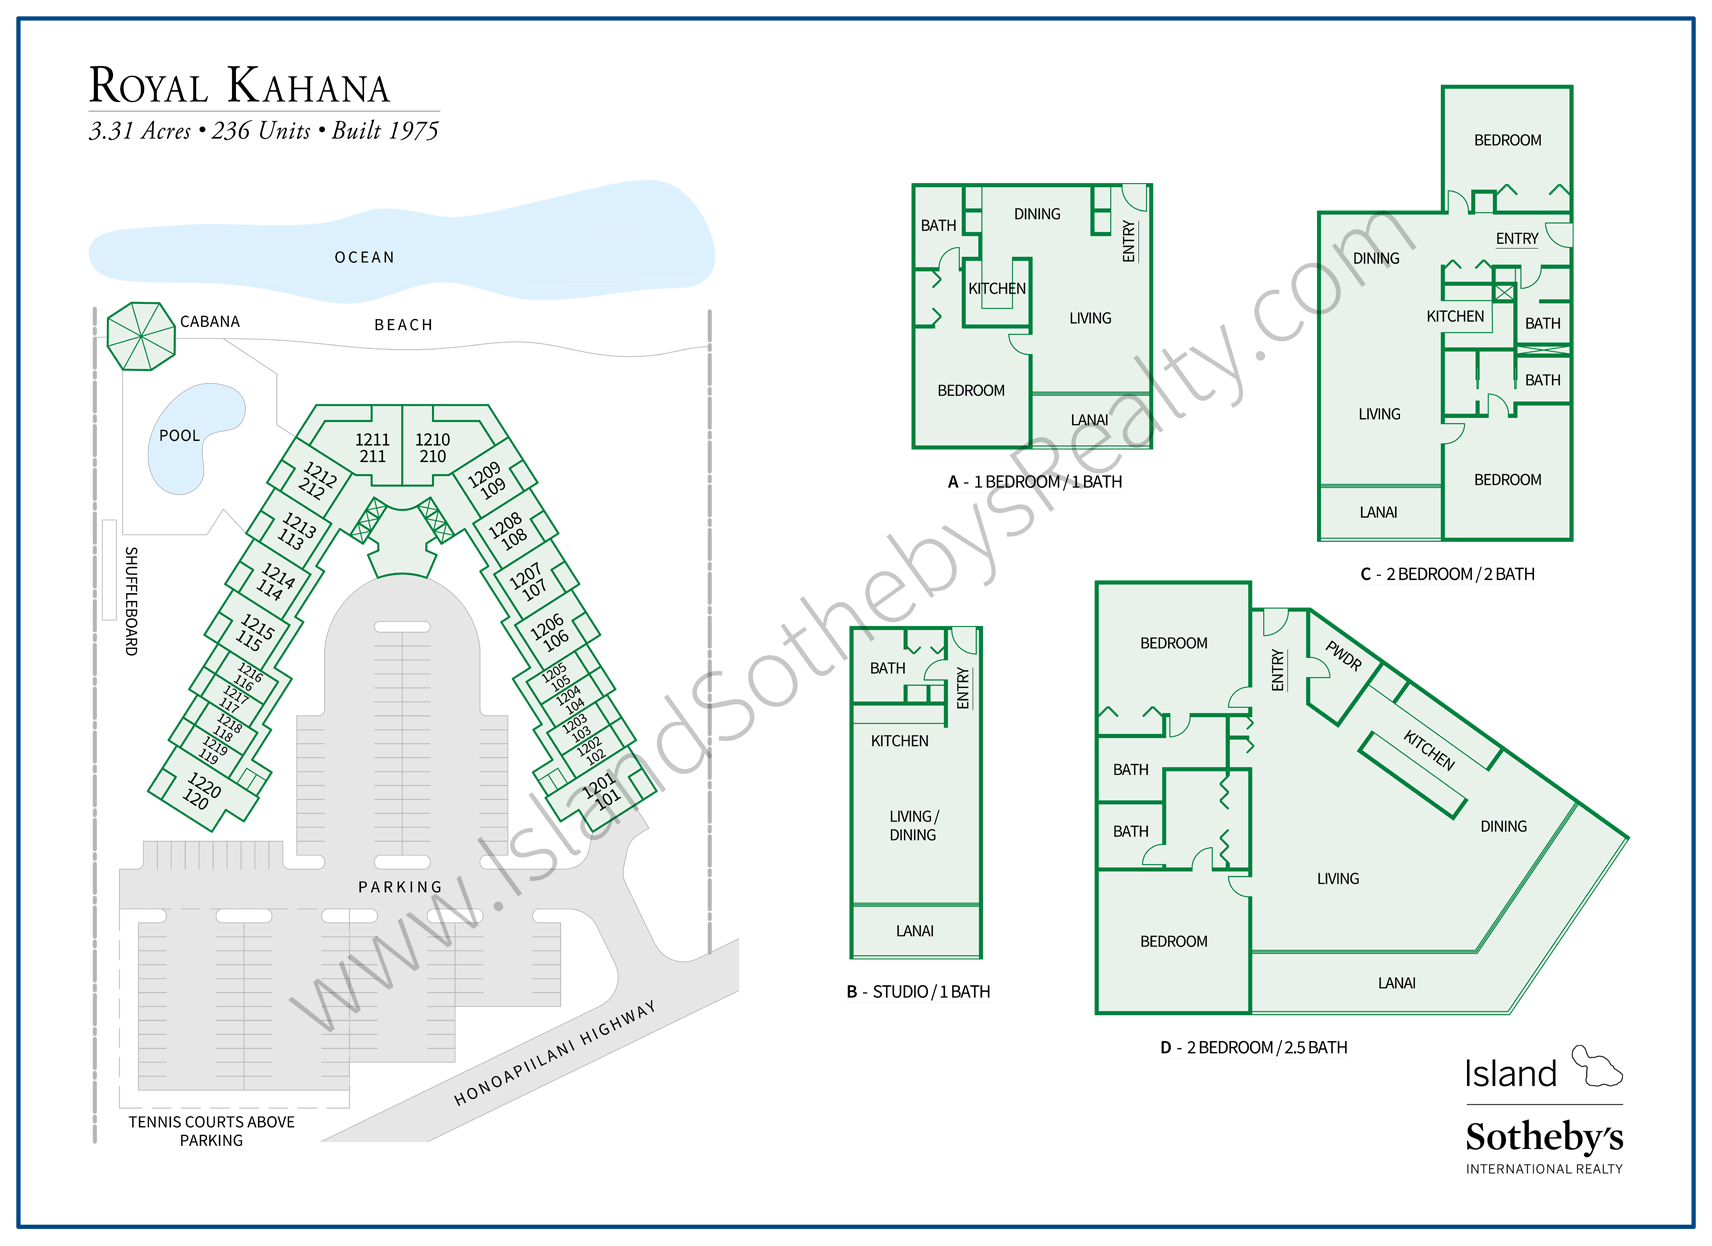 Royal Kahana Map and Floor Plans